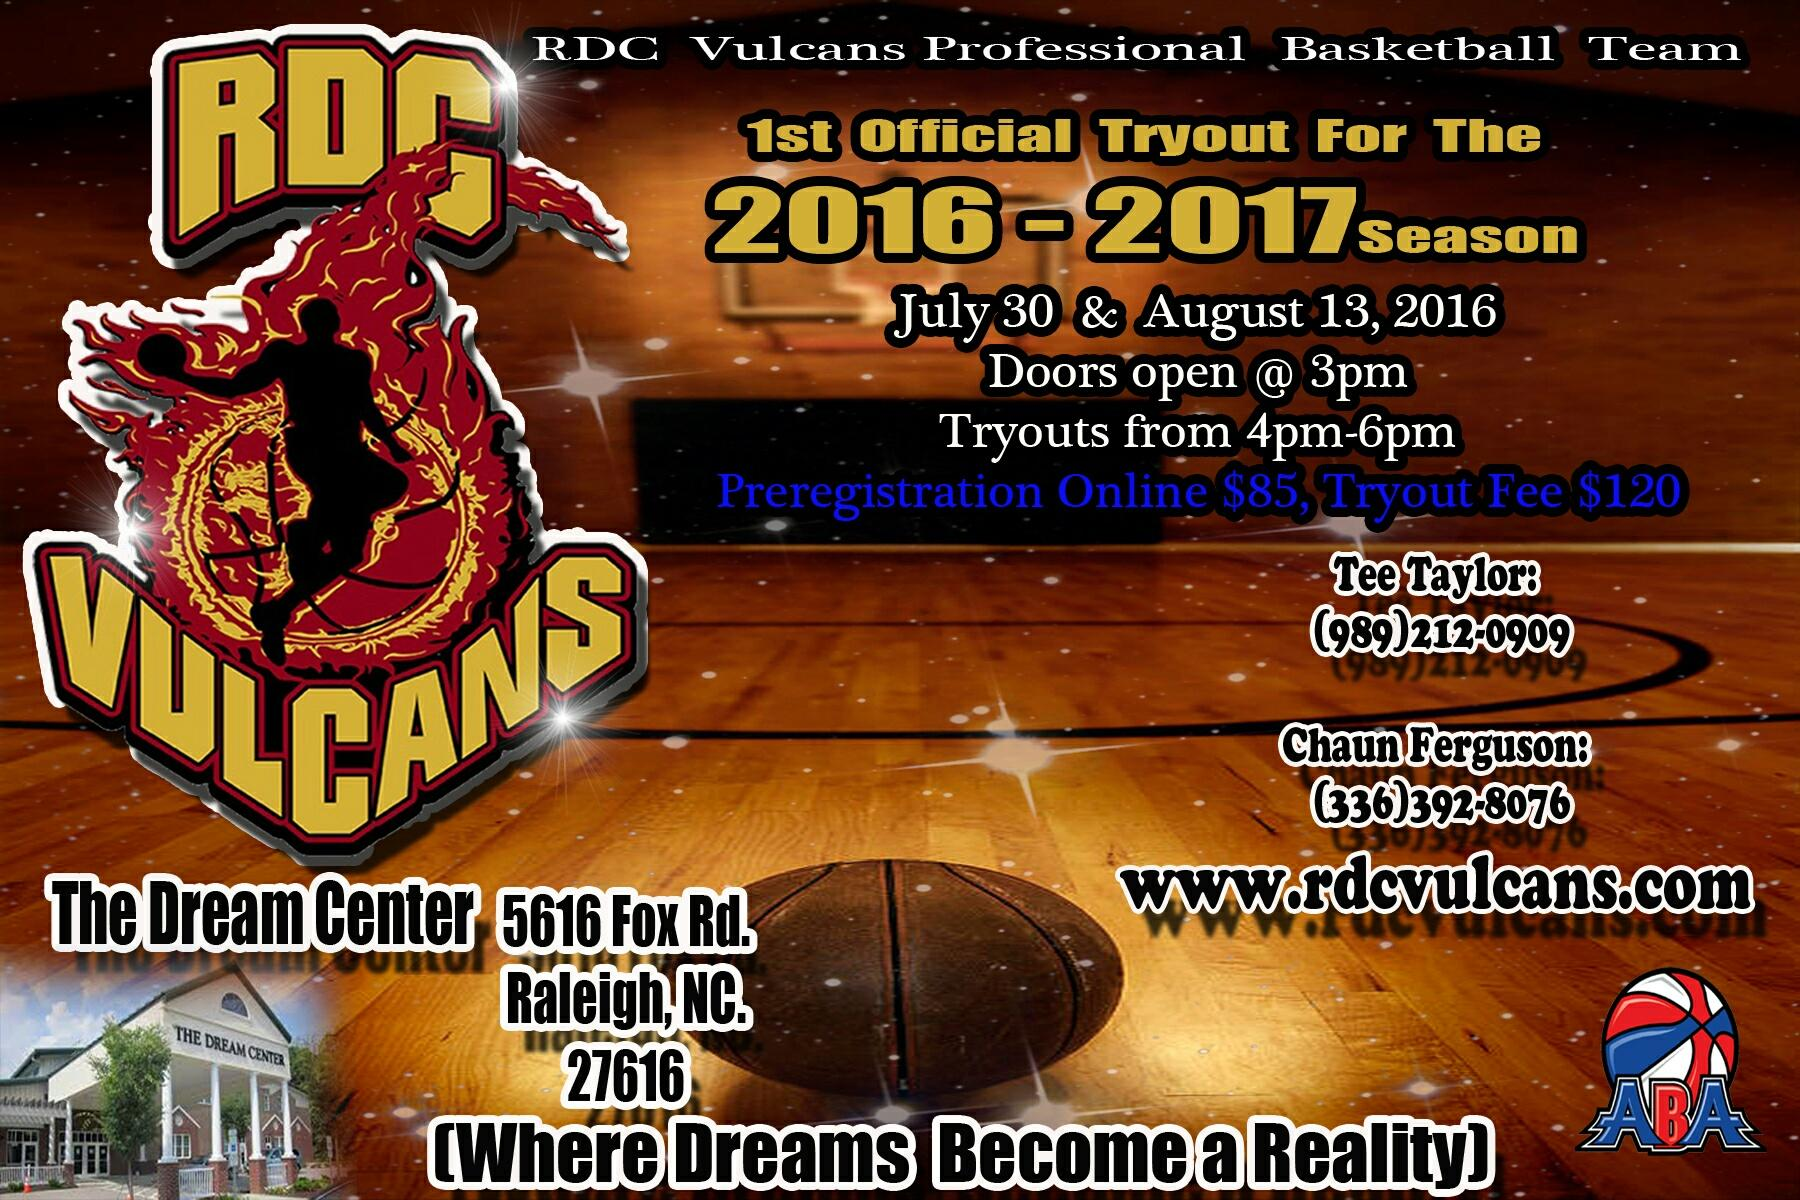 rd_Vulcans_try out flyer